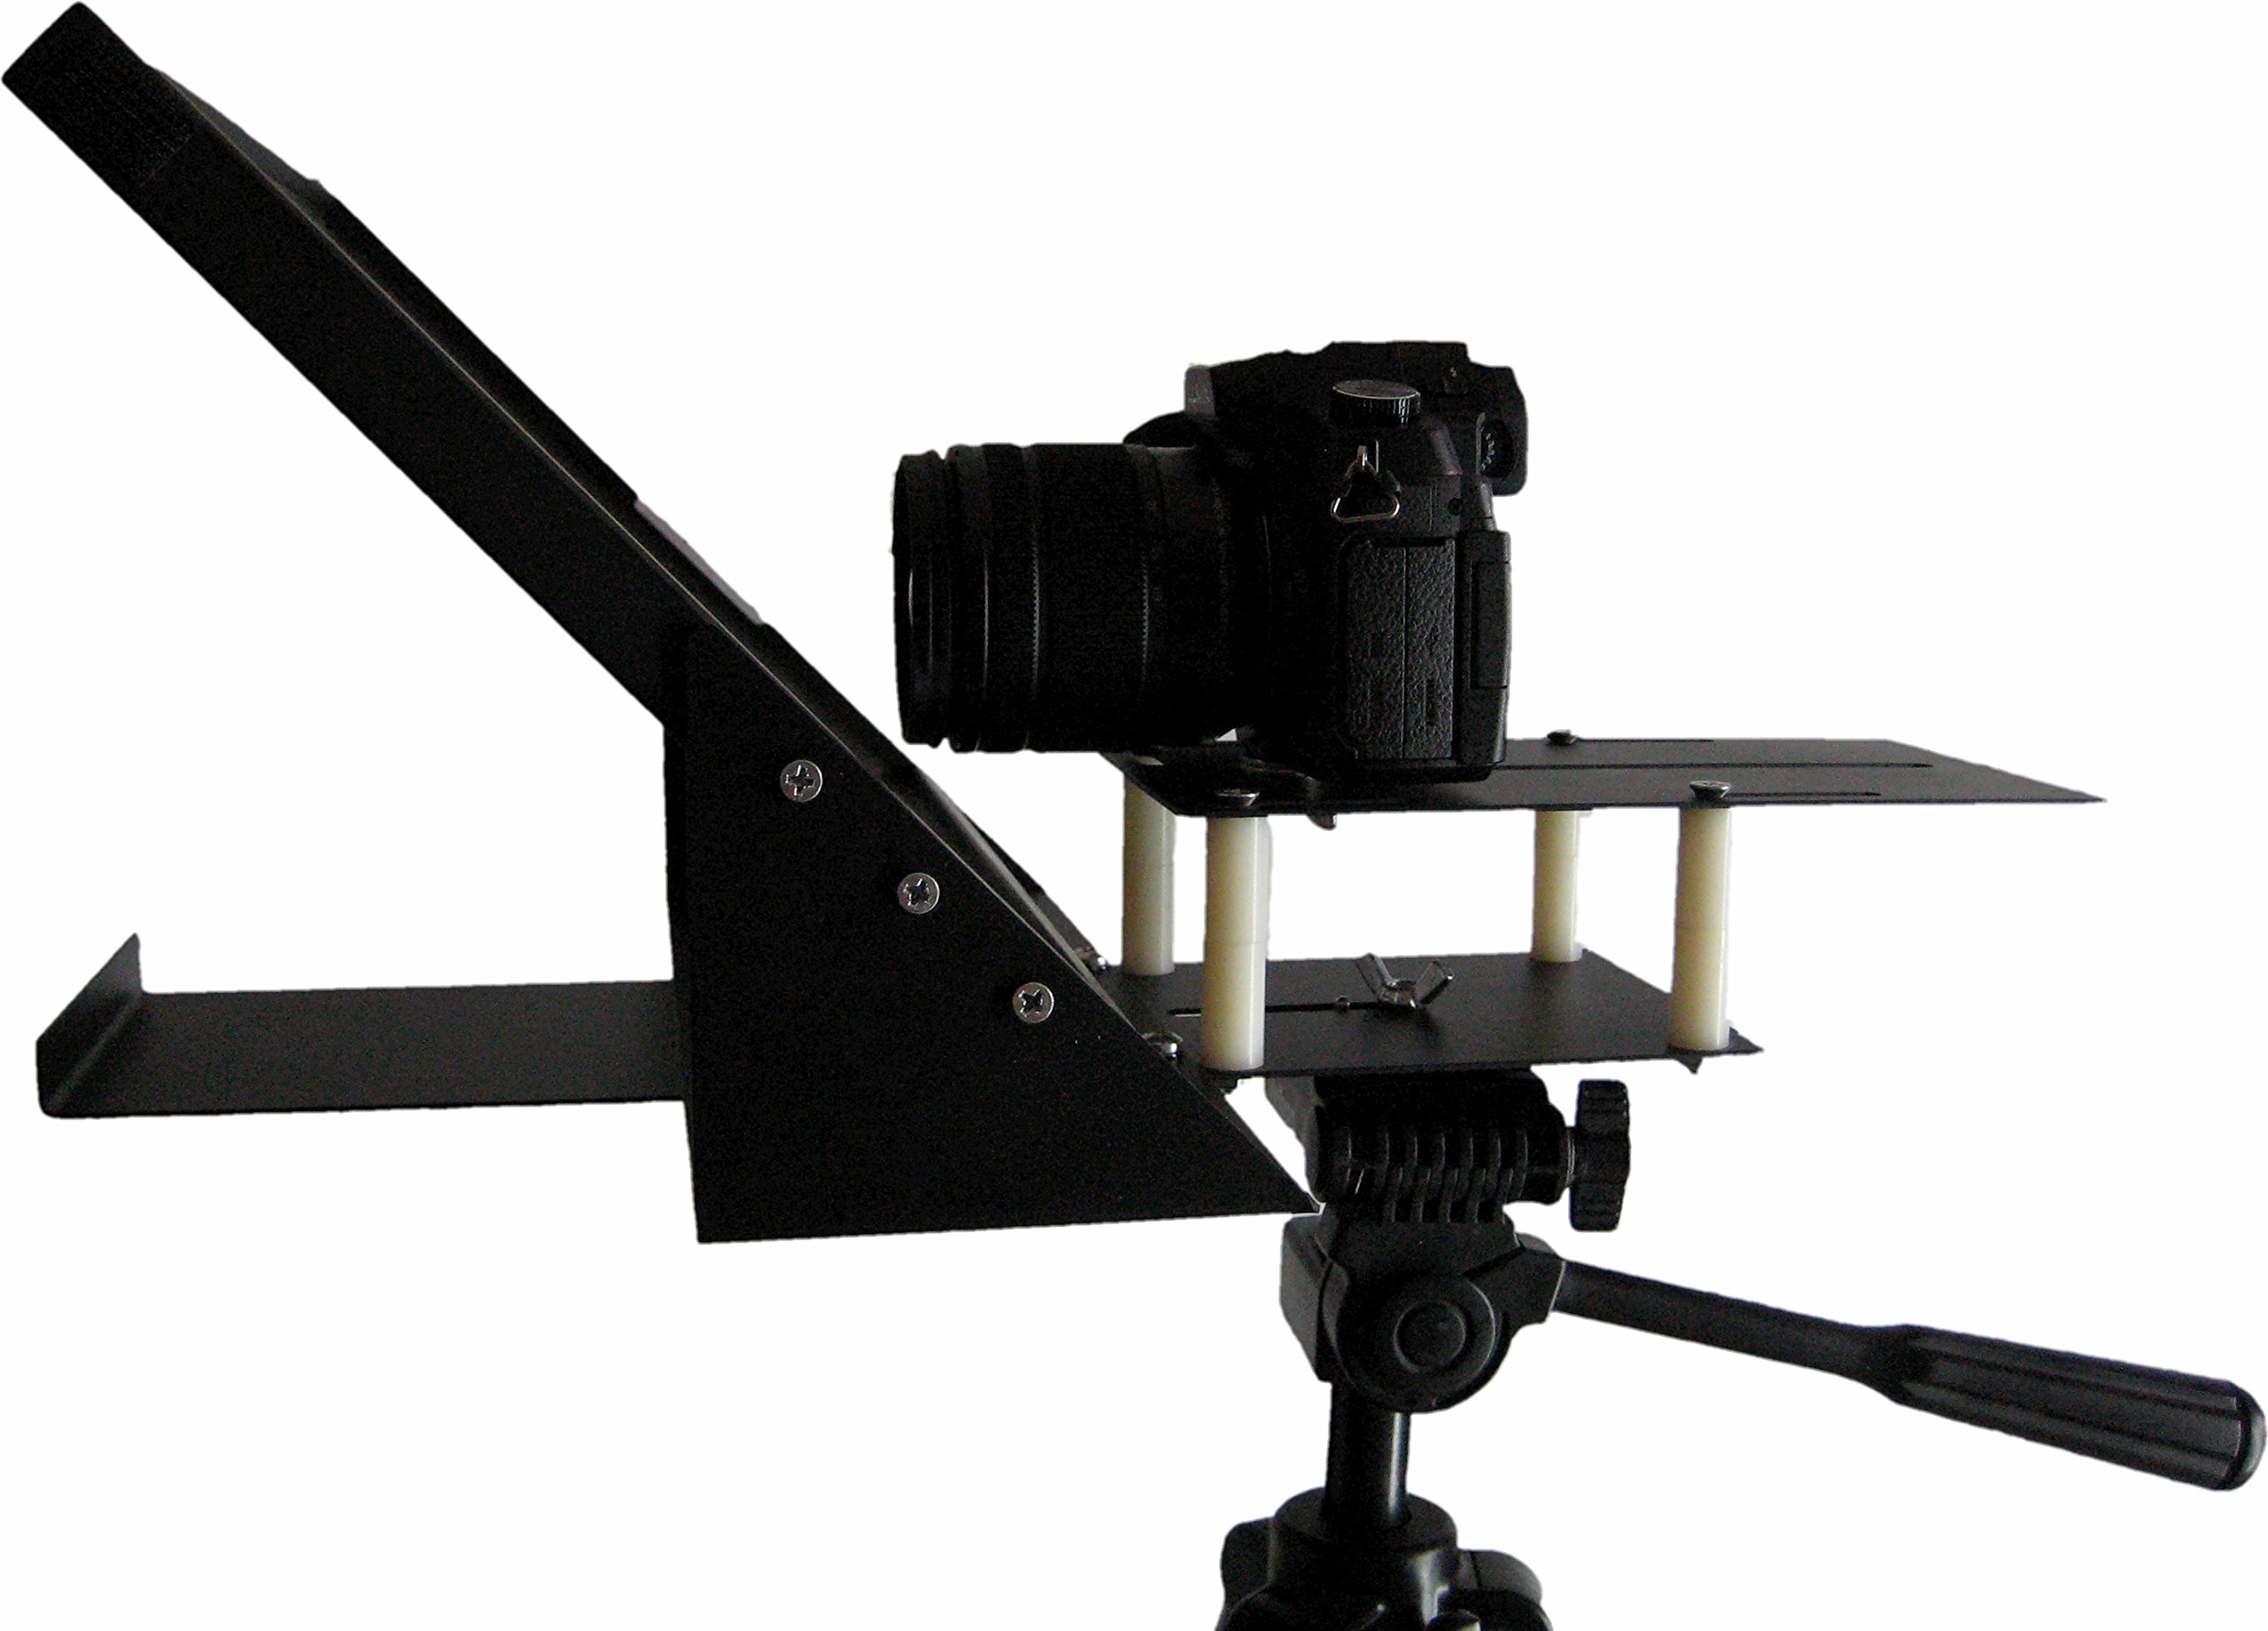 iPad iPad2 iPad3 iPad4 iPad Mini Teleprompter R810-10 with Beam Splitter Glass